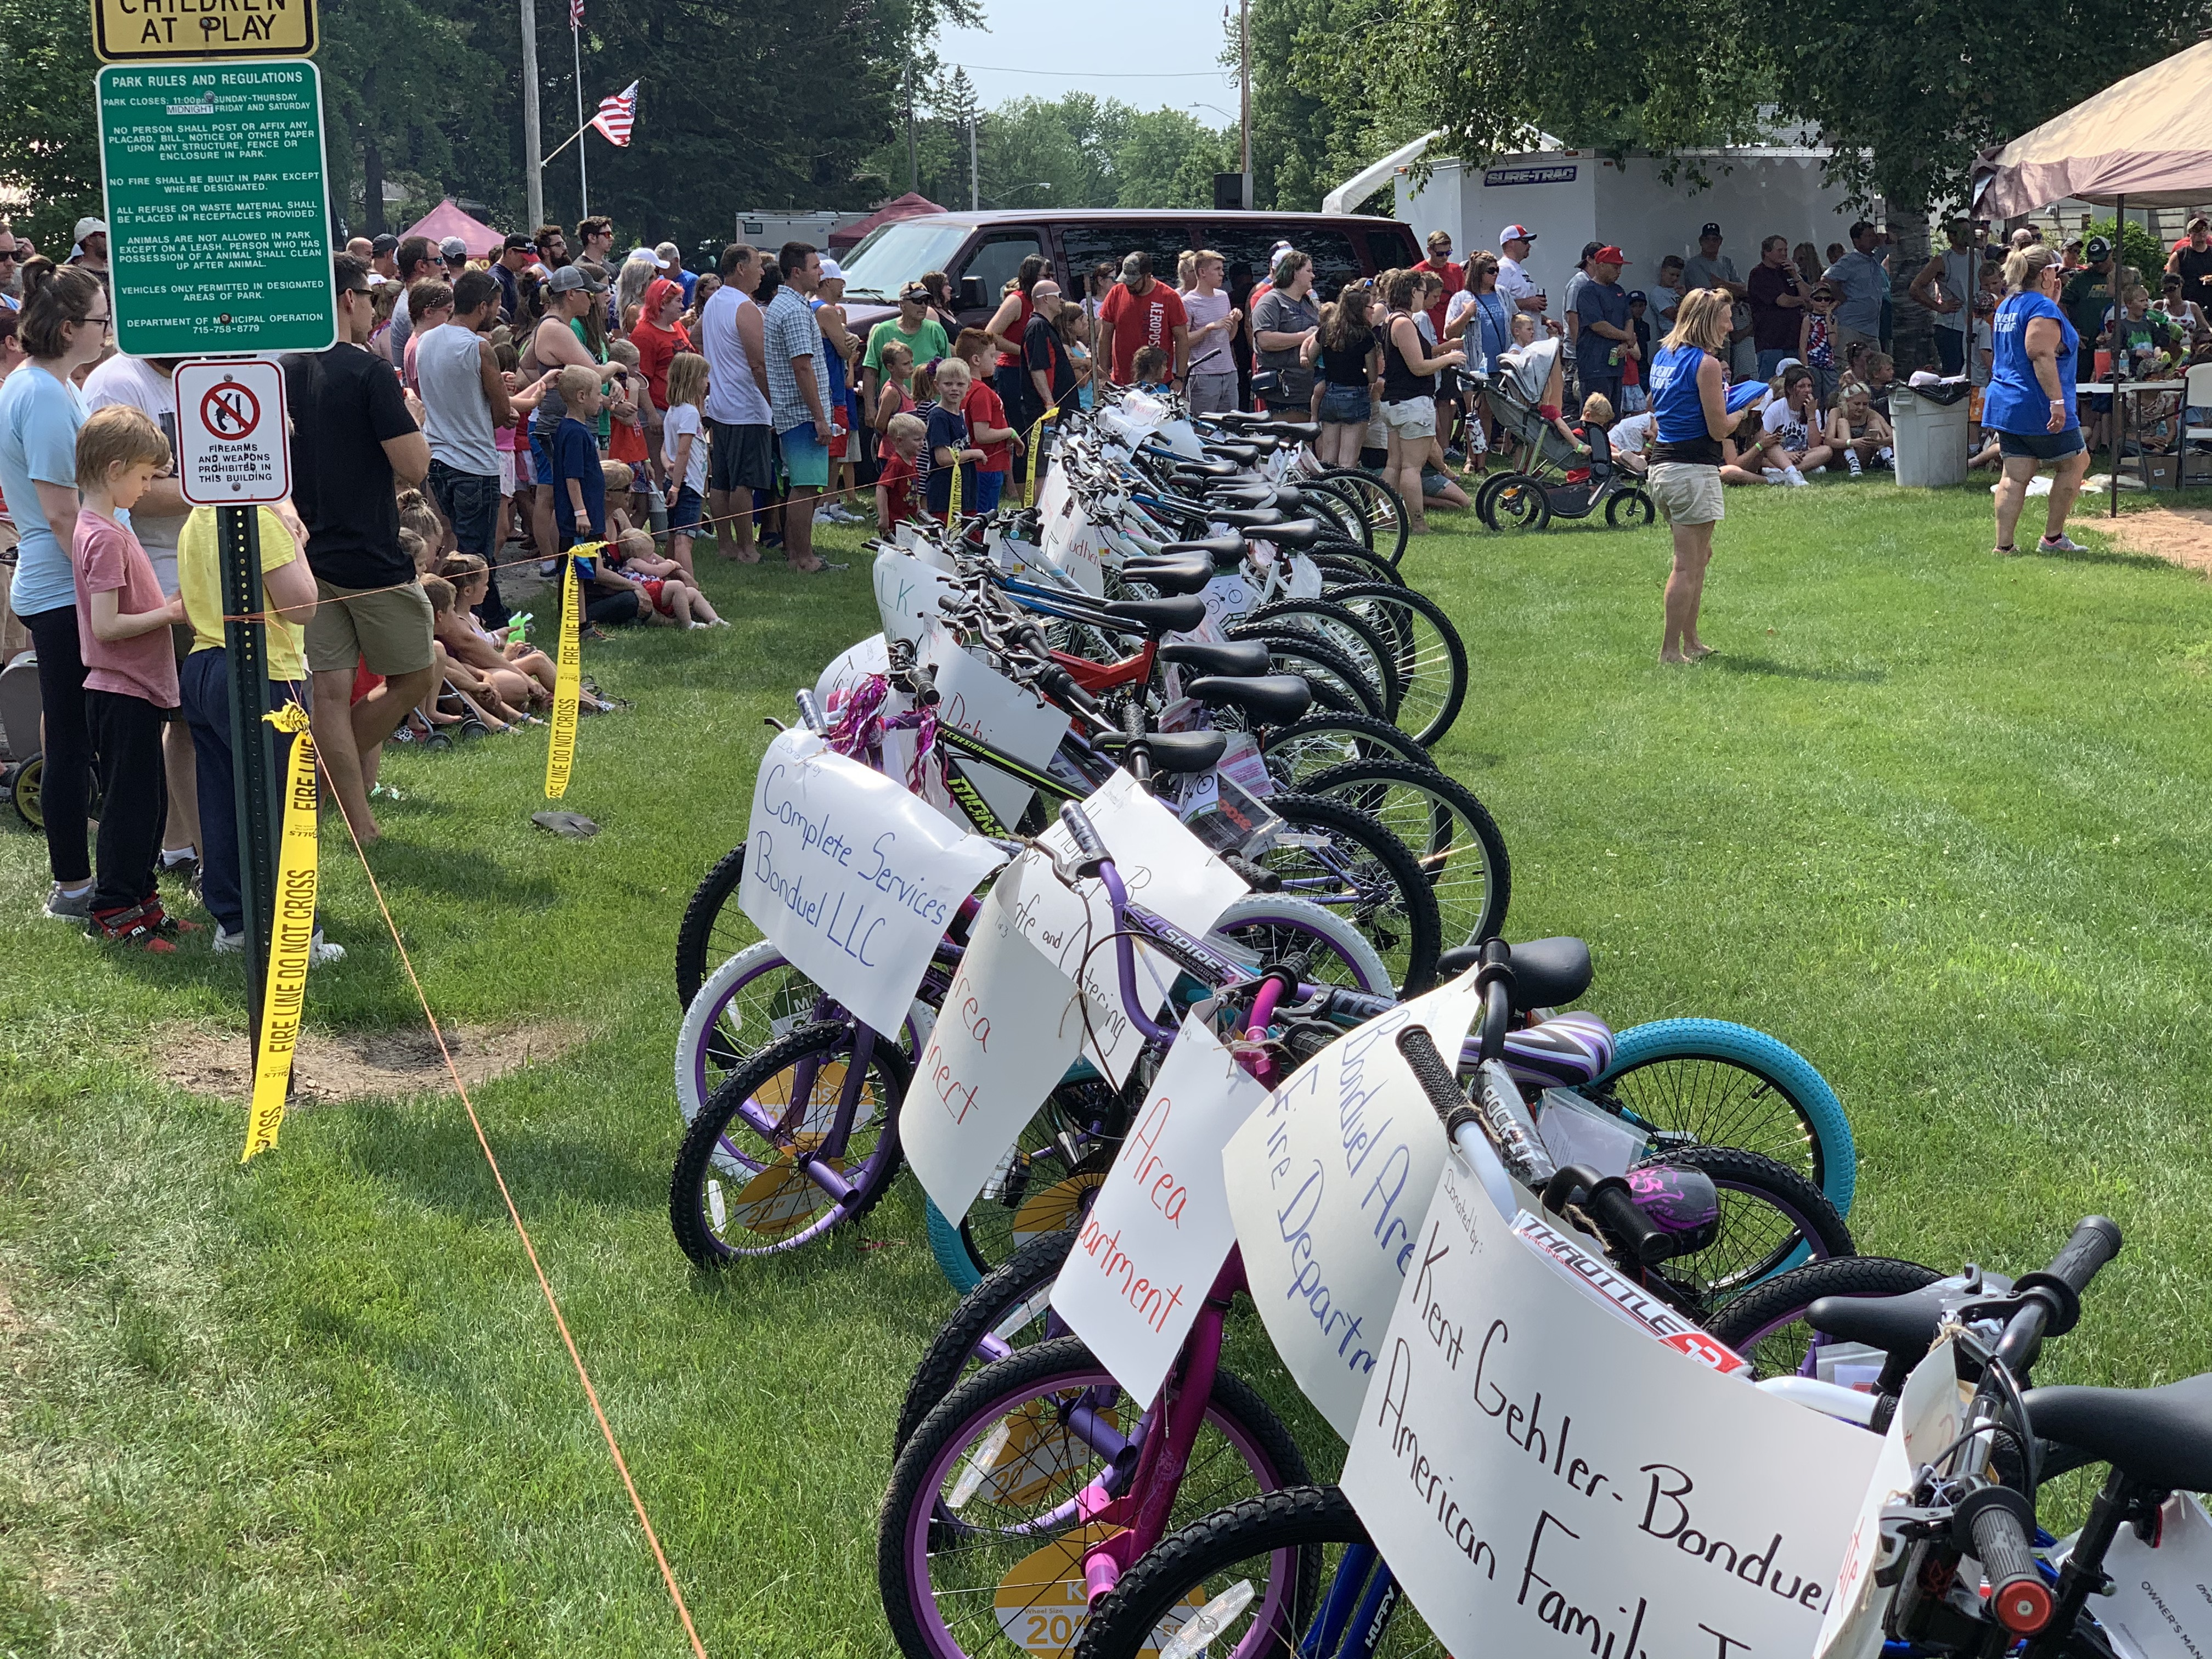 Visitors wait in anticipation of the bike raffle July 4 at Village Park in Bonduel. More than 100 bikes were donated for families to win at the event.Luke Reimer   NEW Media